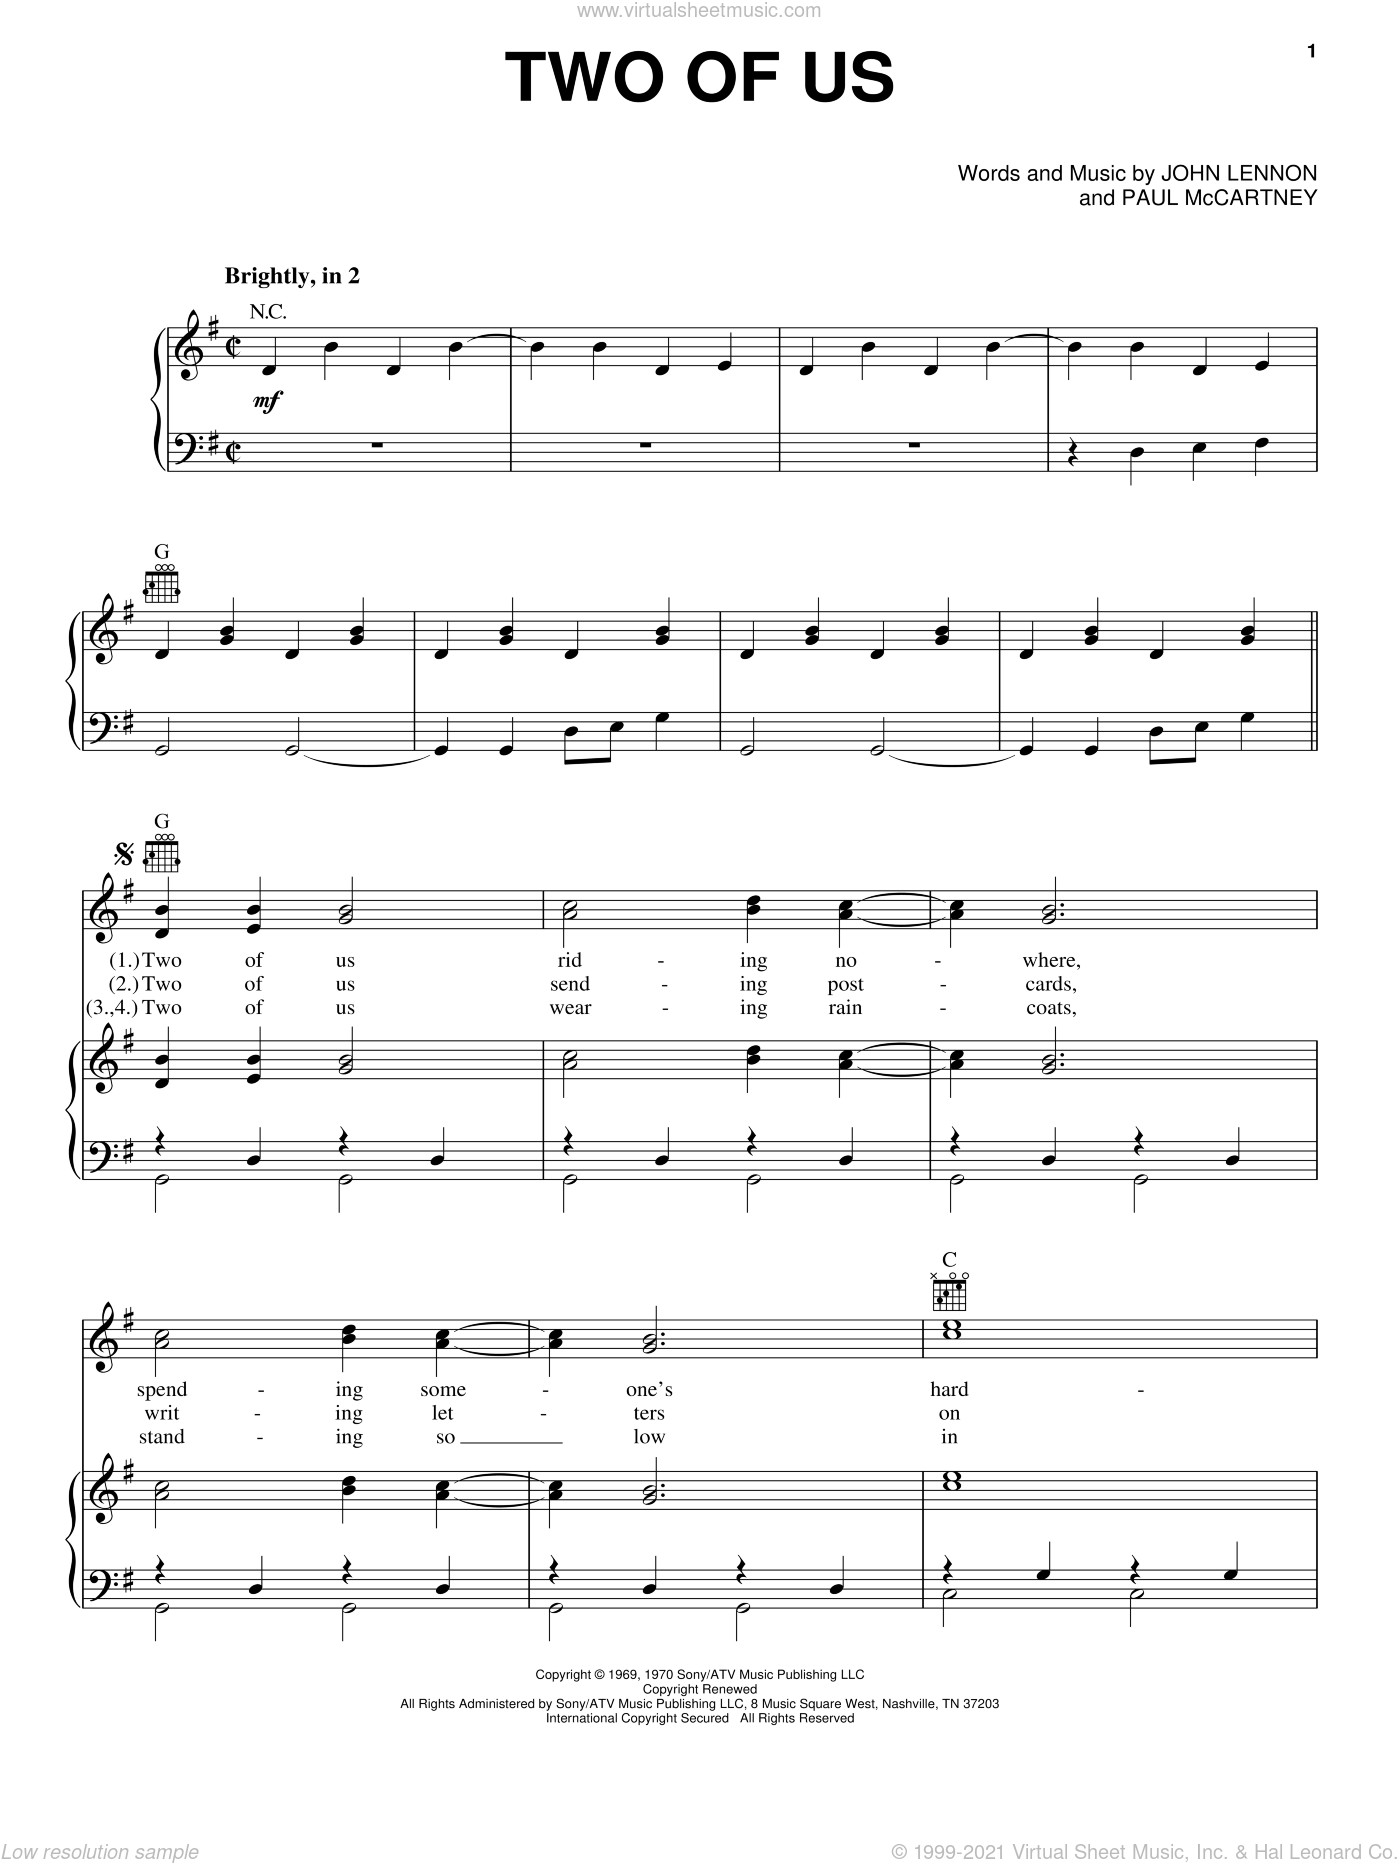 Two Of Us sheet music for voice, piano or guitar by The Beatles, John Lennon and Paul McCartney, intermediate